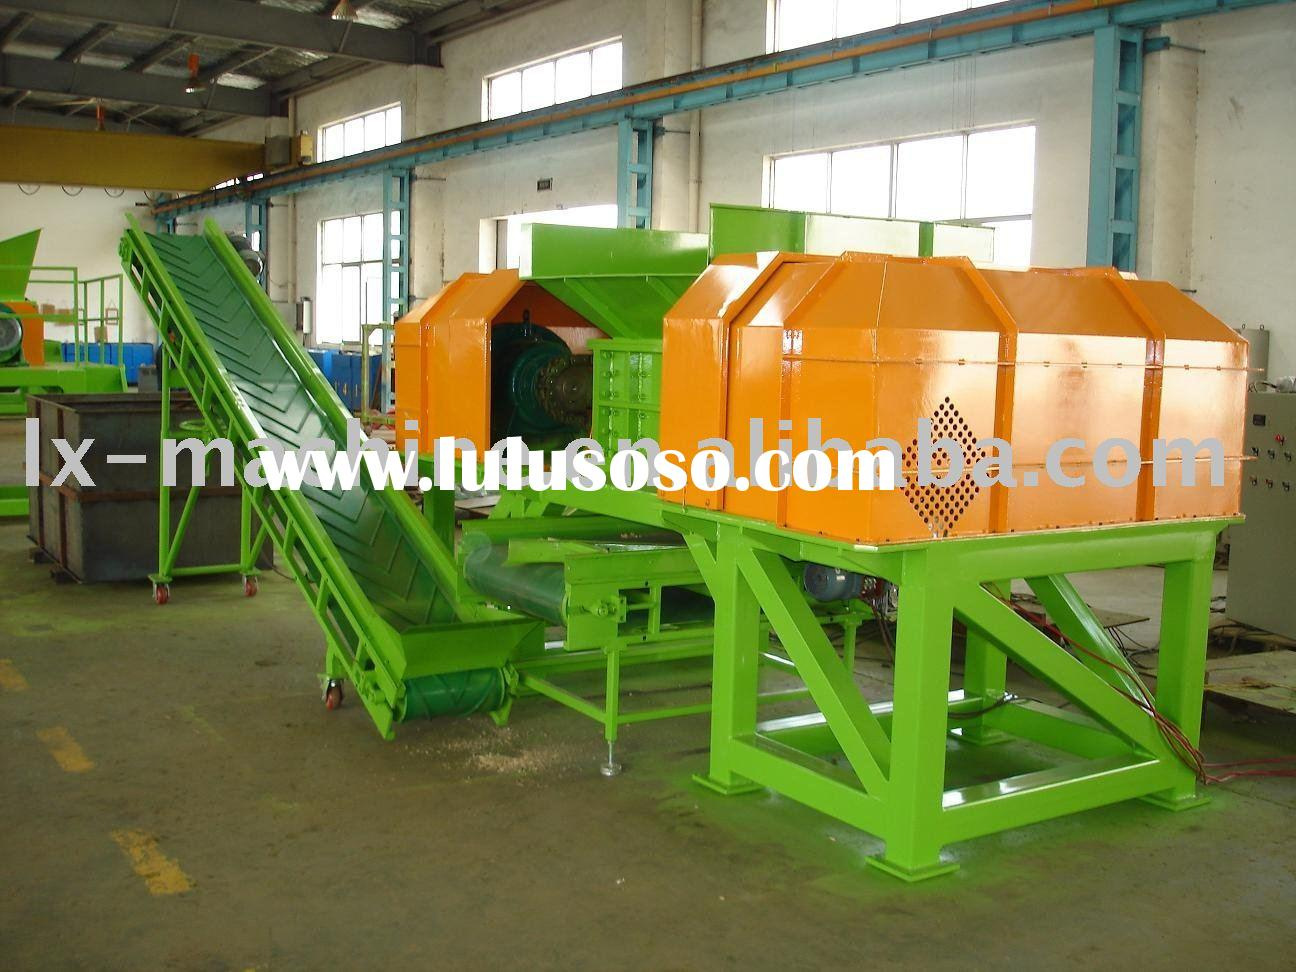 Plastic Four Shaft Shredder